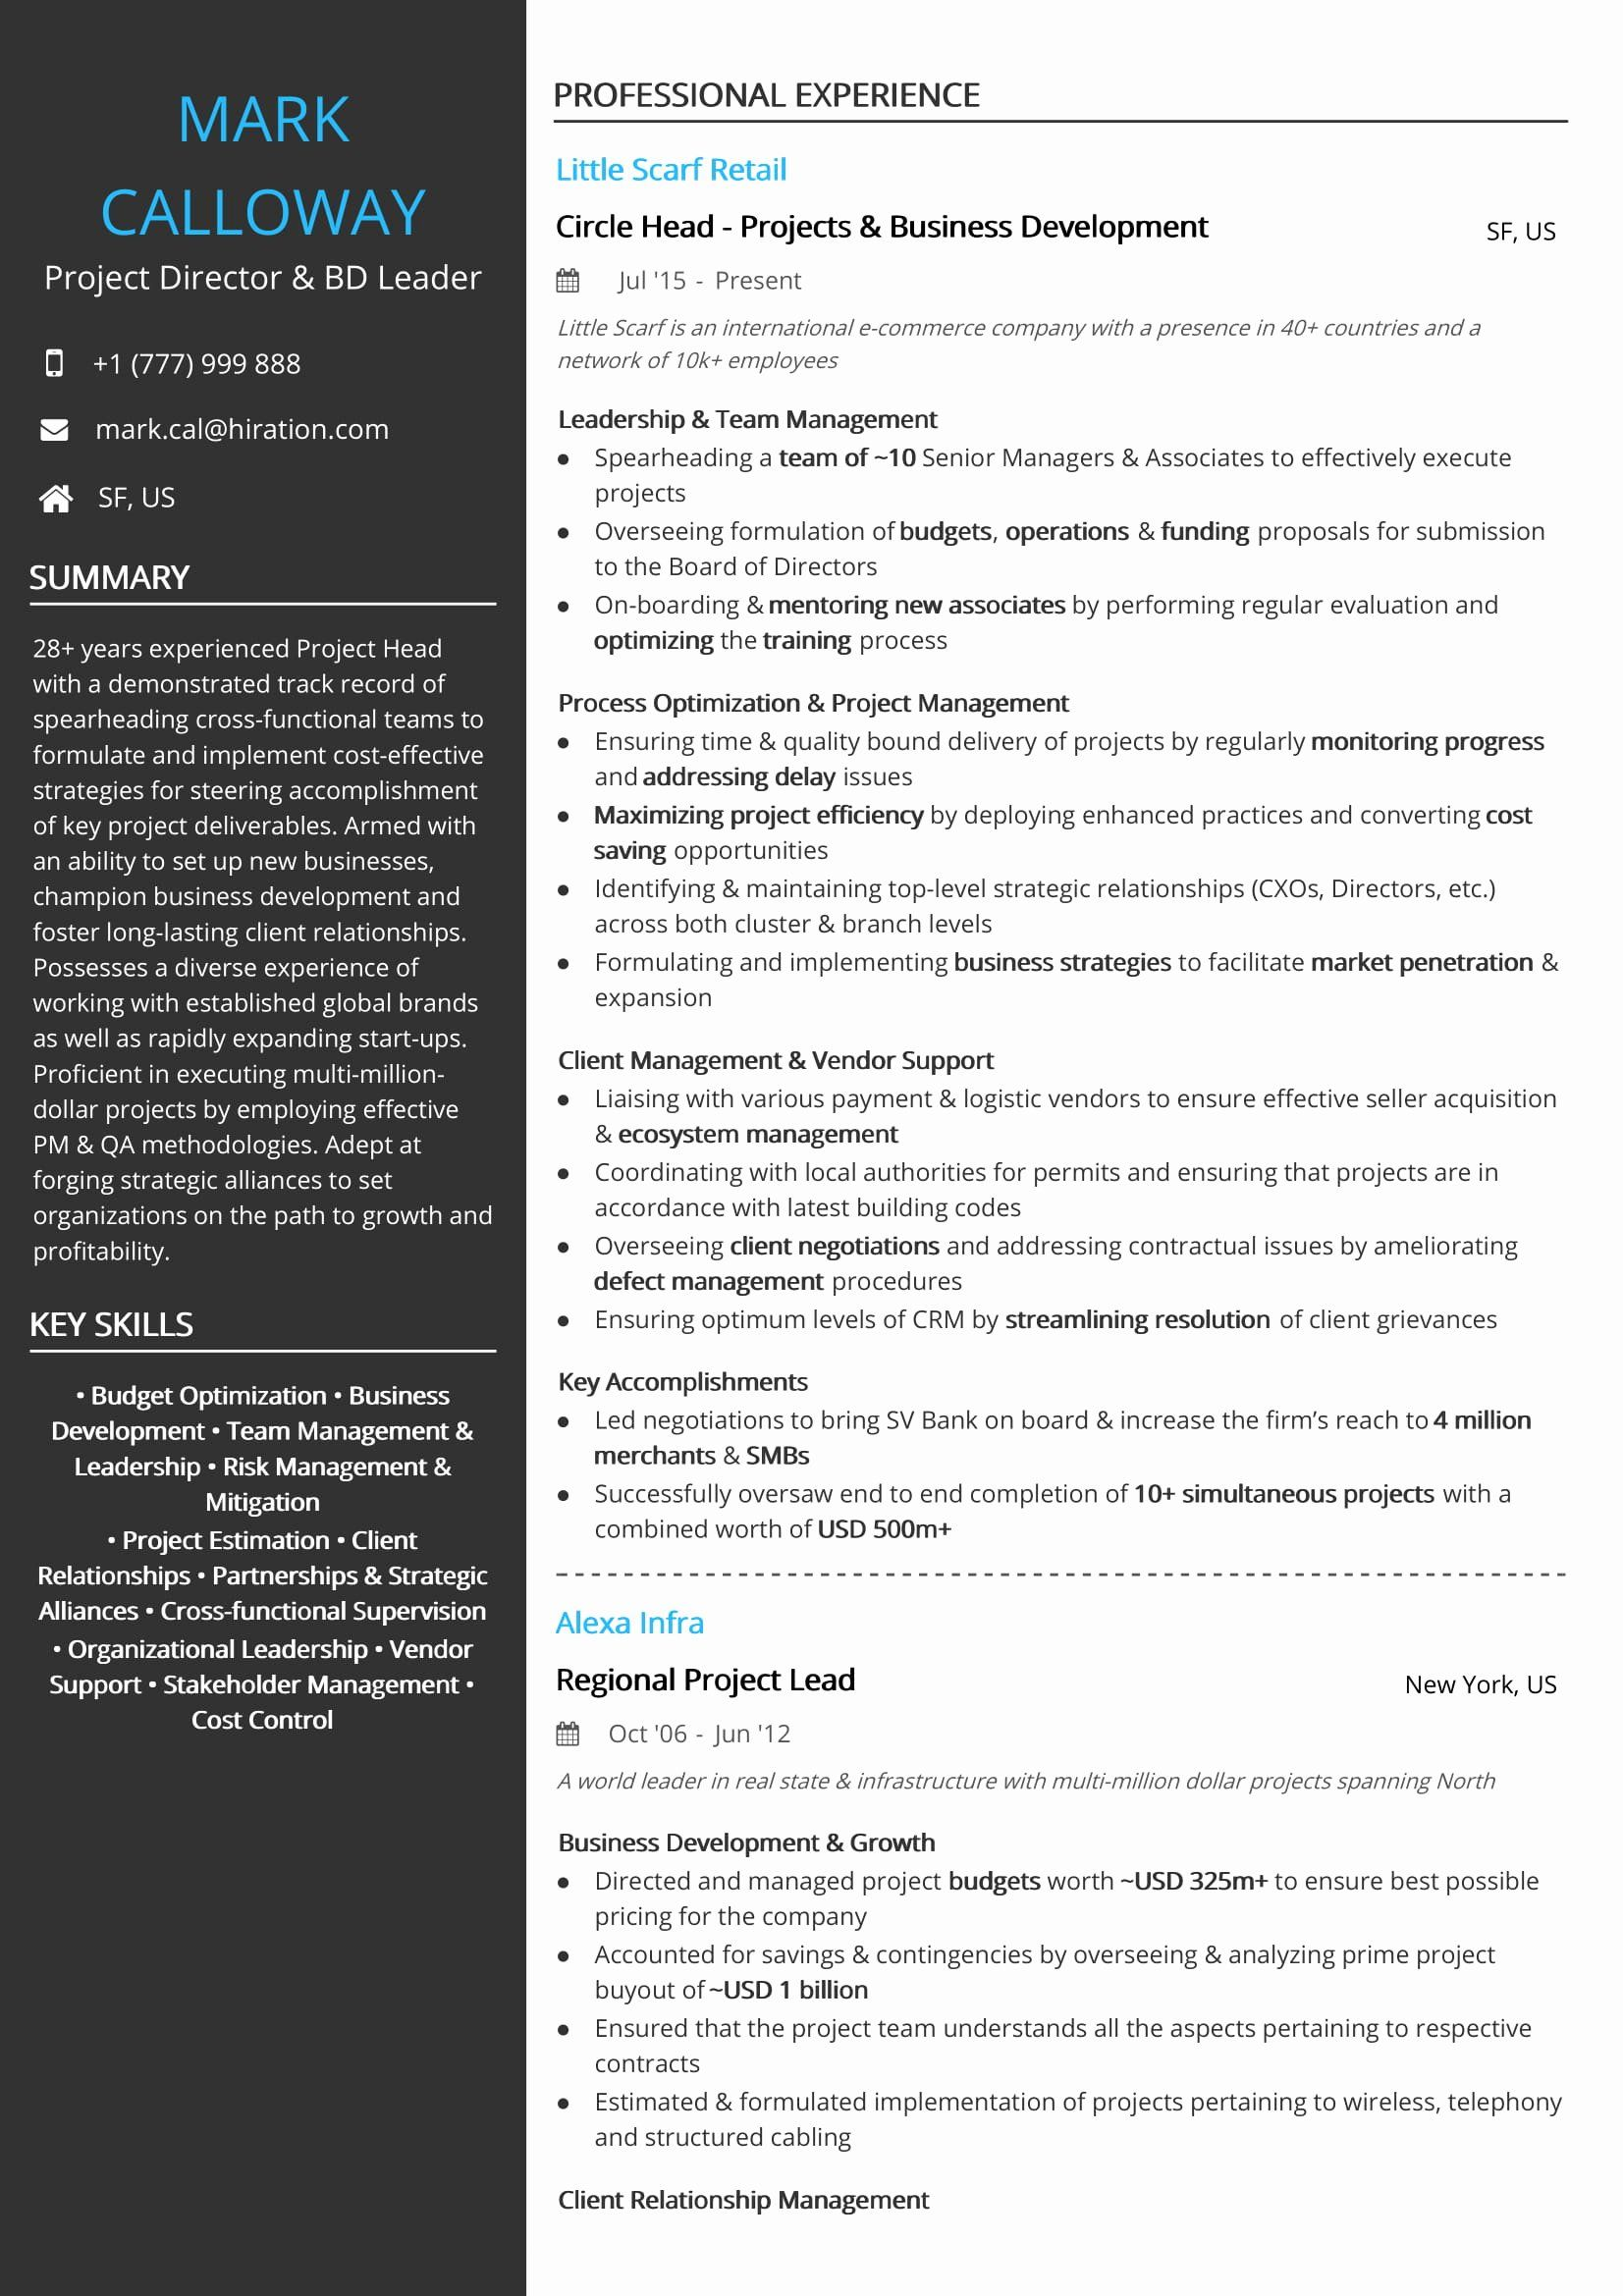 Google Product Manager Resume Fresh Project Management Resume Examples And Samples Manager Resume Job Resume Samples Administrative Assistant Resume